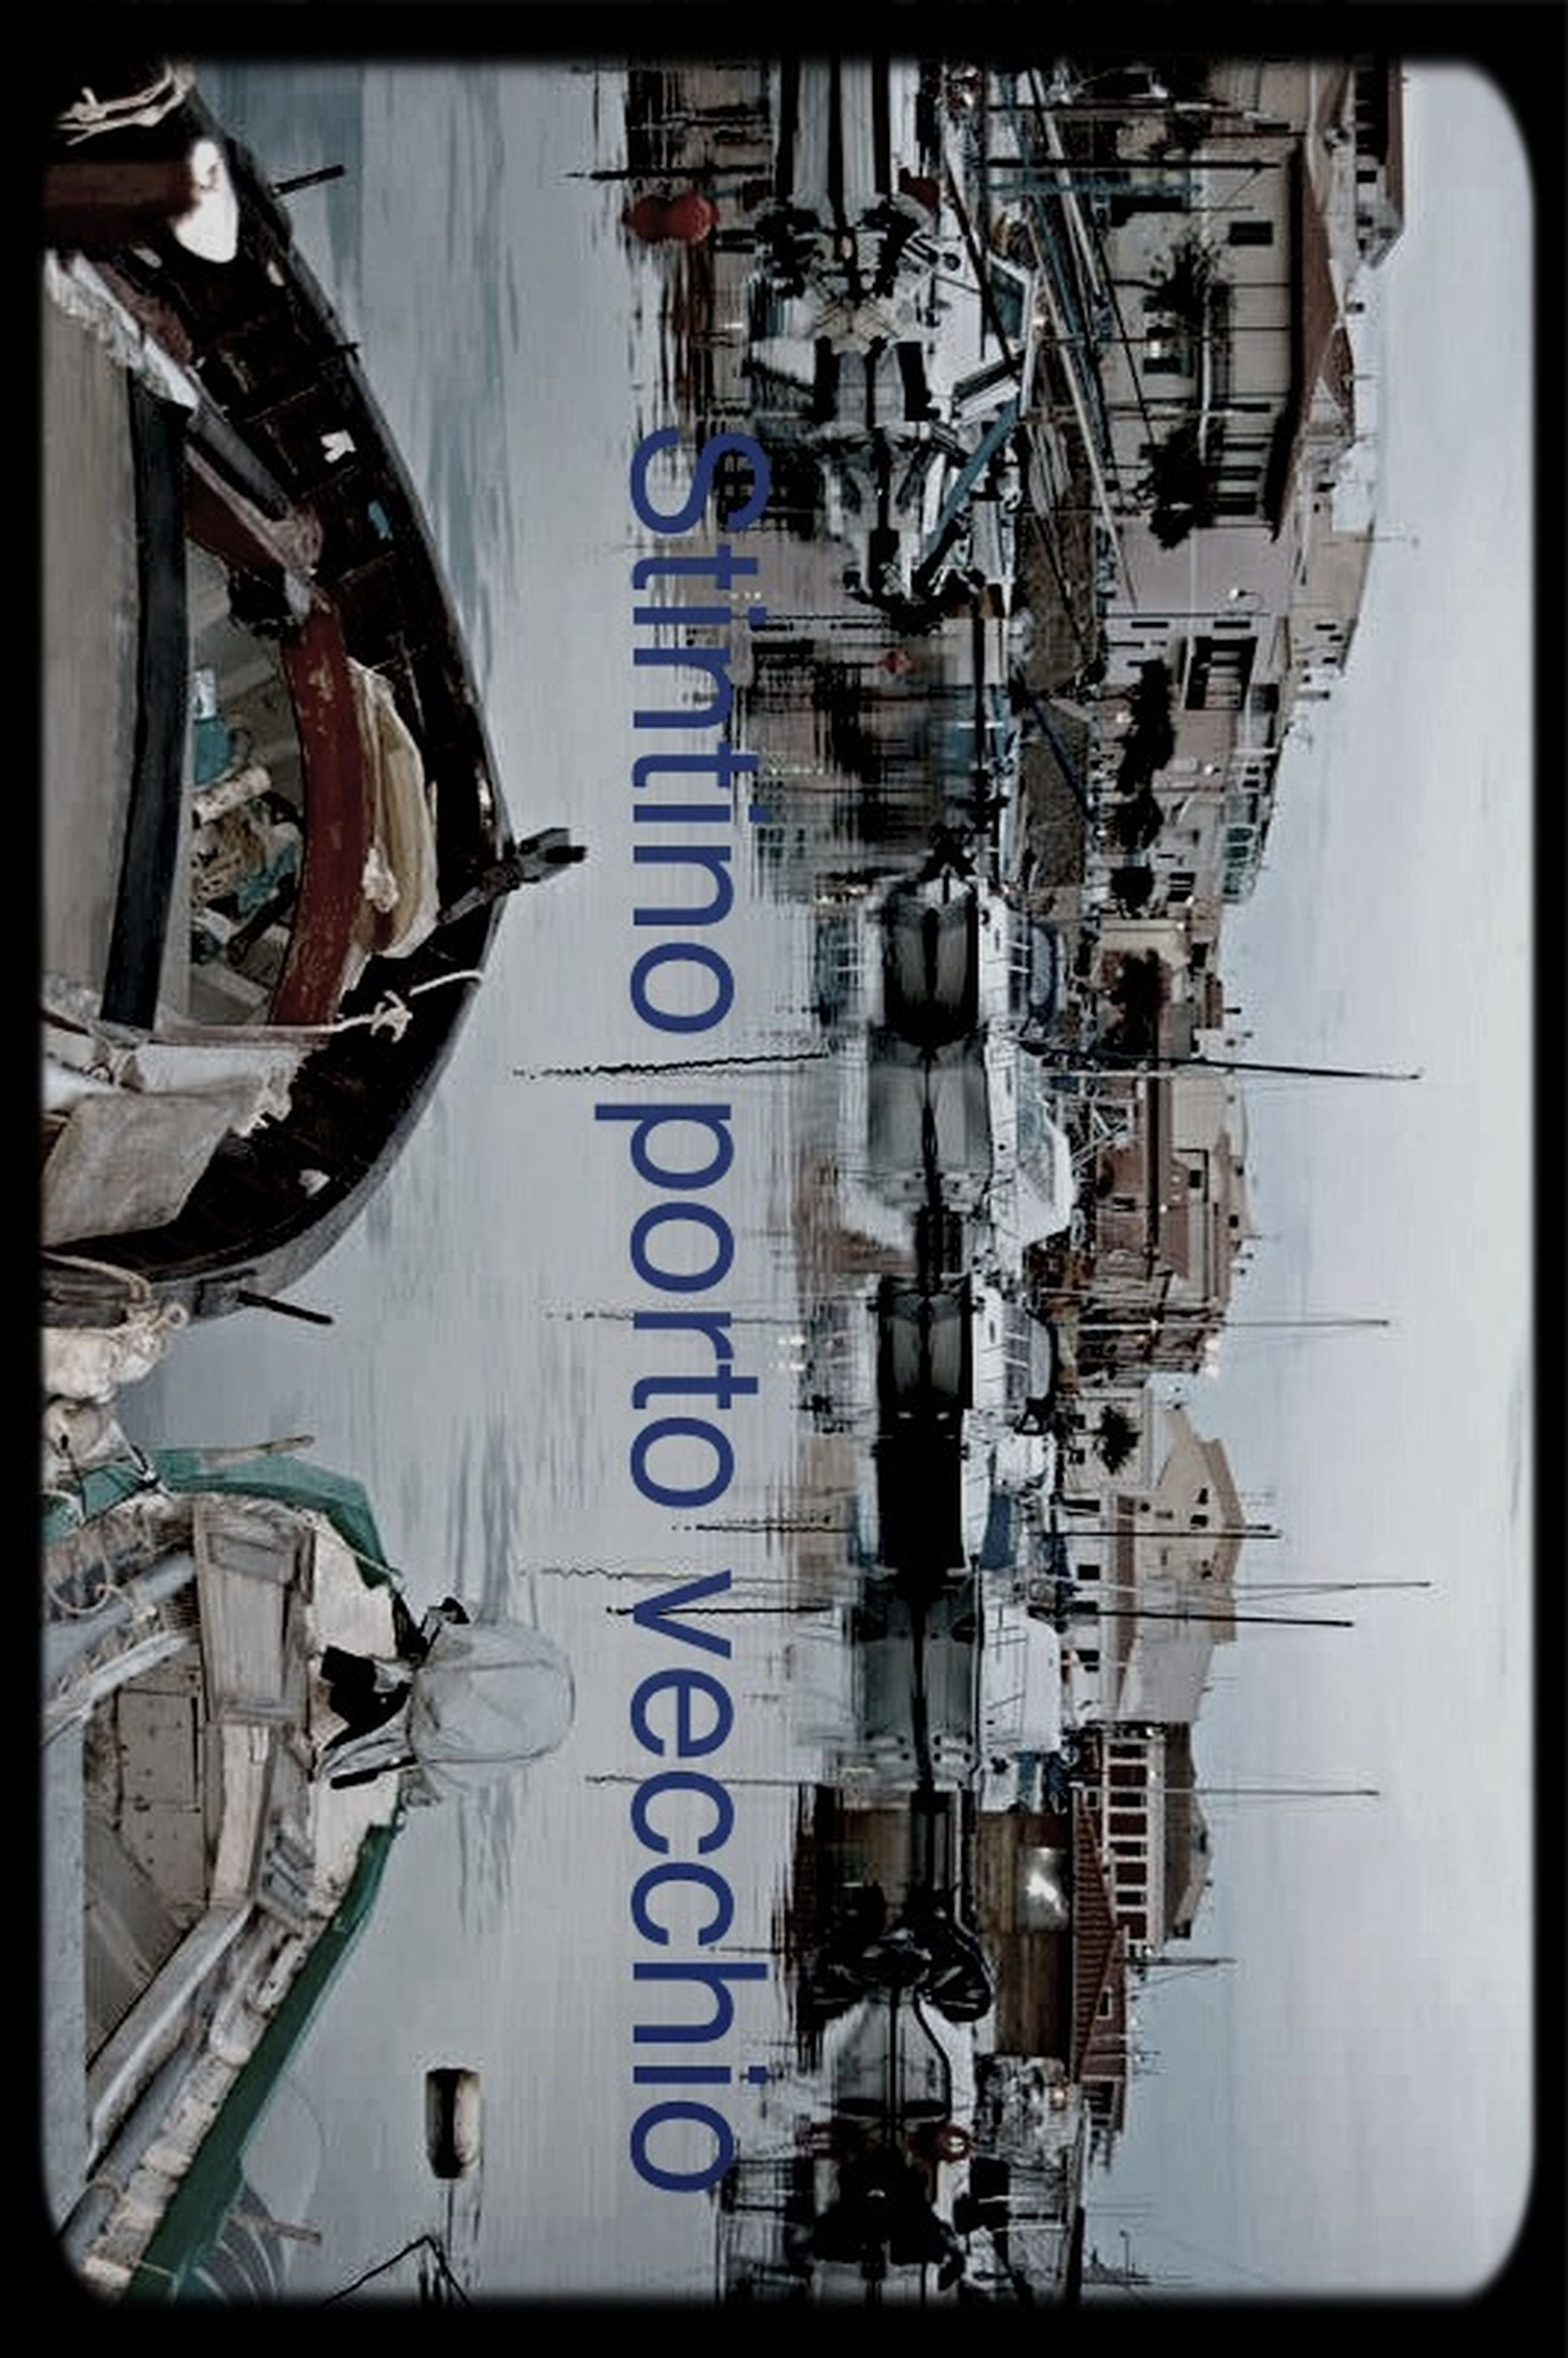 transportation, mode of transport, nautical vessel, architecture, built structure, transfer print, large group of people, city, travel, building exterior, high angle view, auto post production filter, boat, harbor, moored, incidental people, travel destinations, day, tourism, river